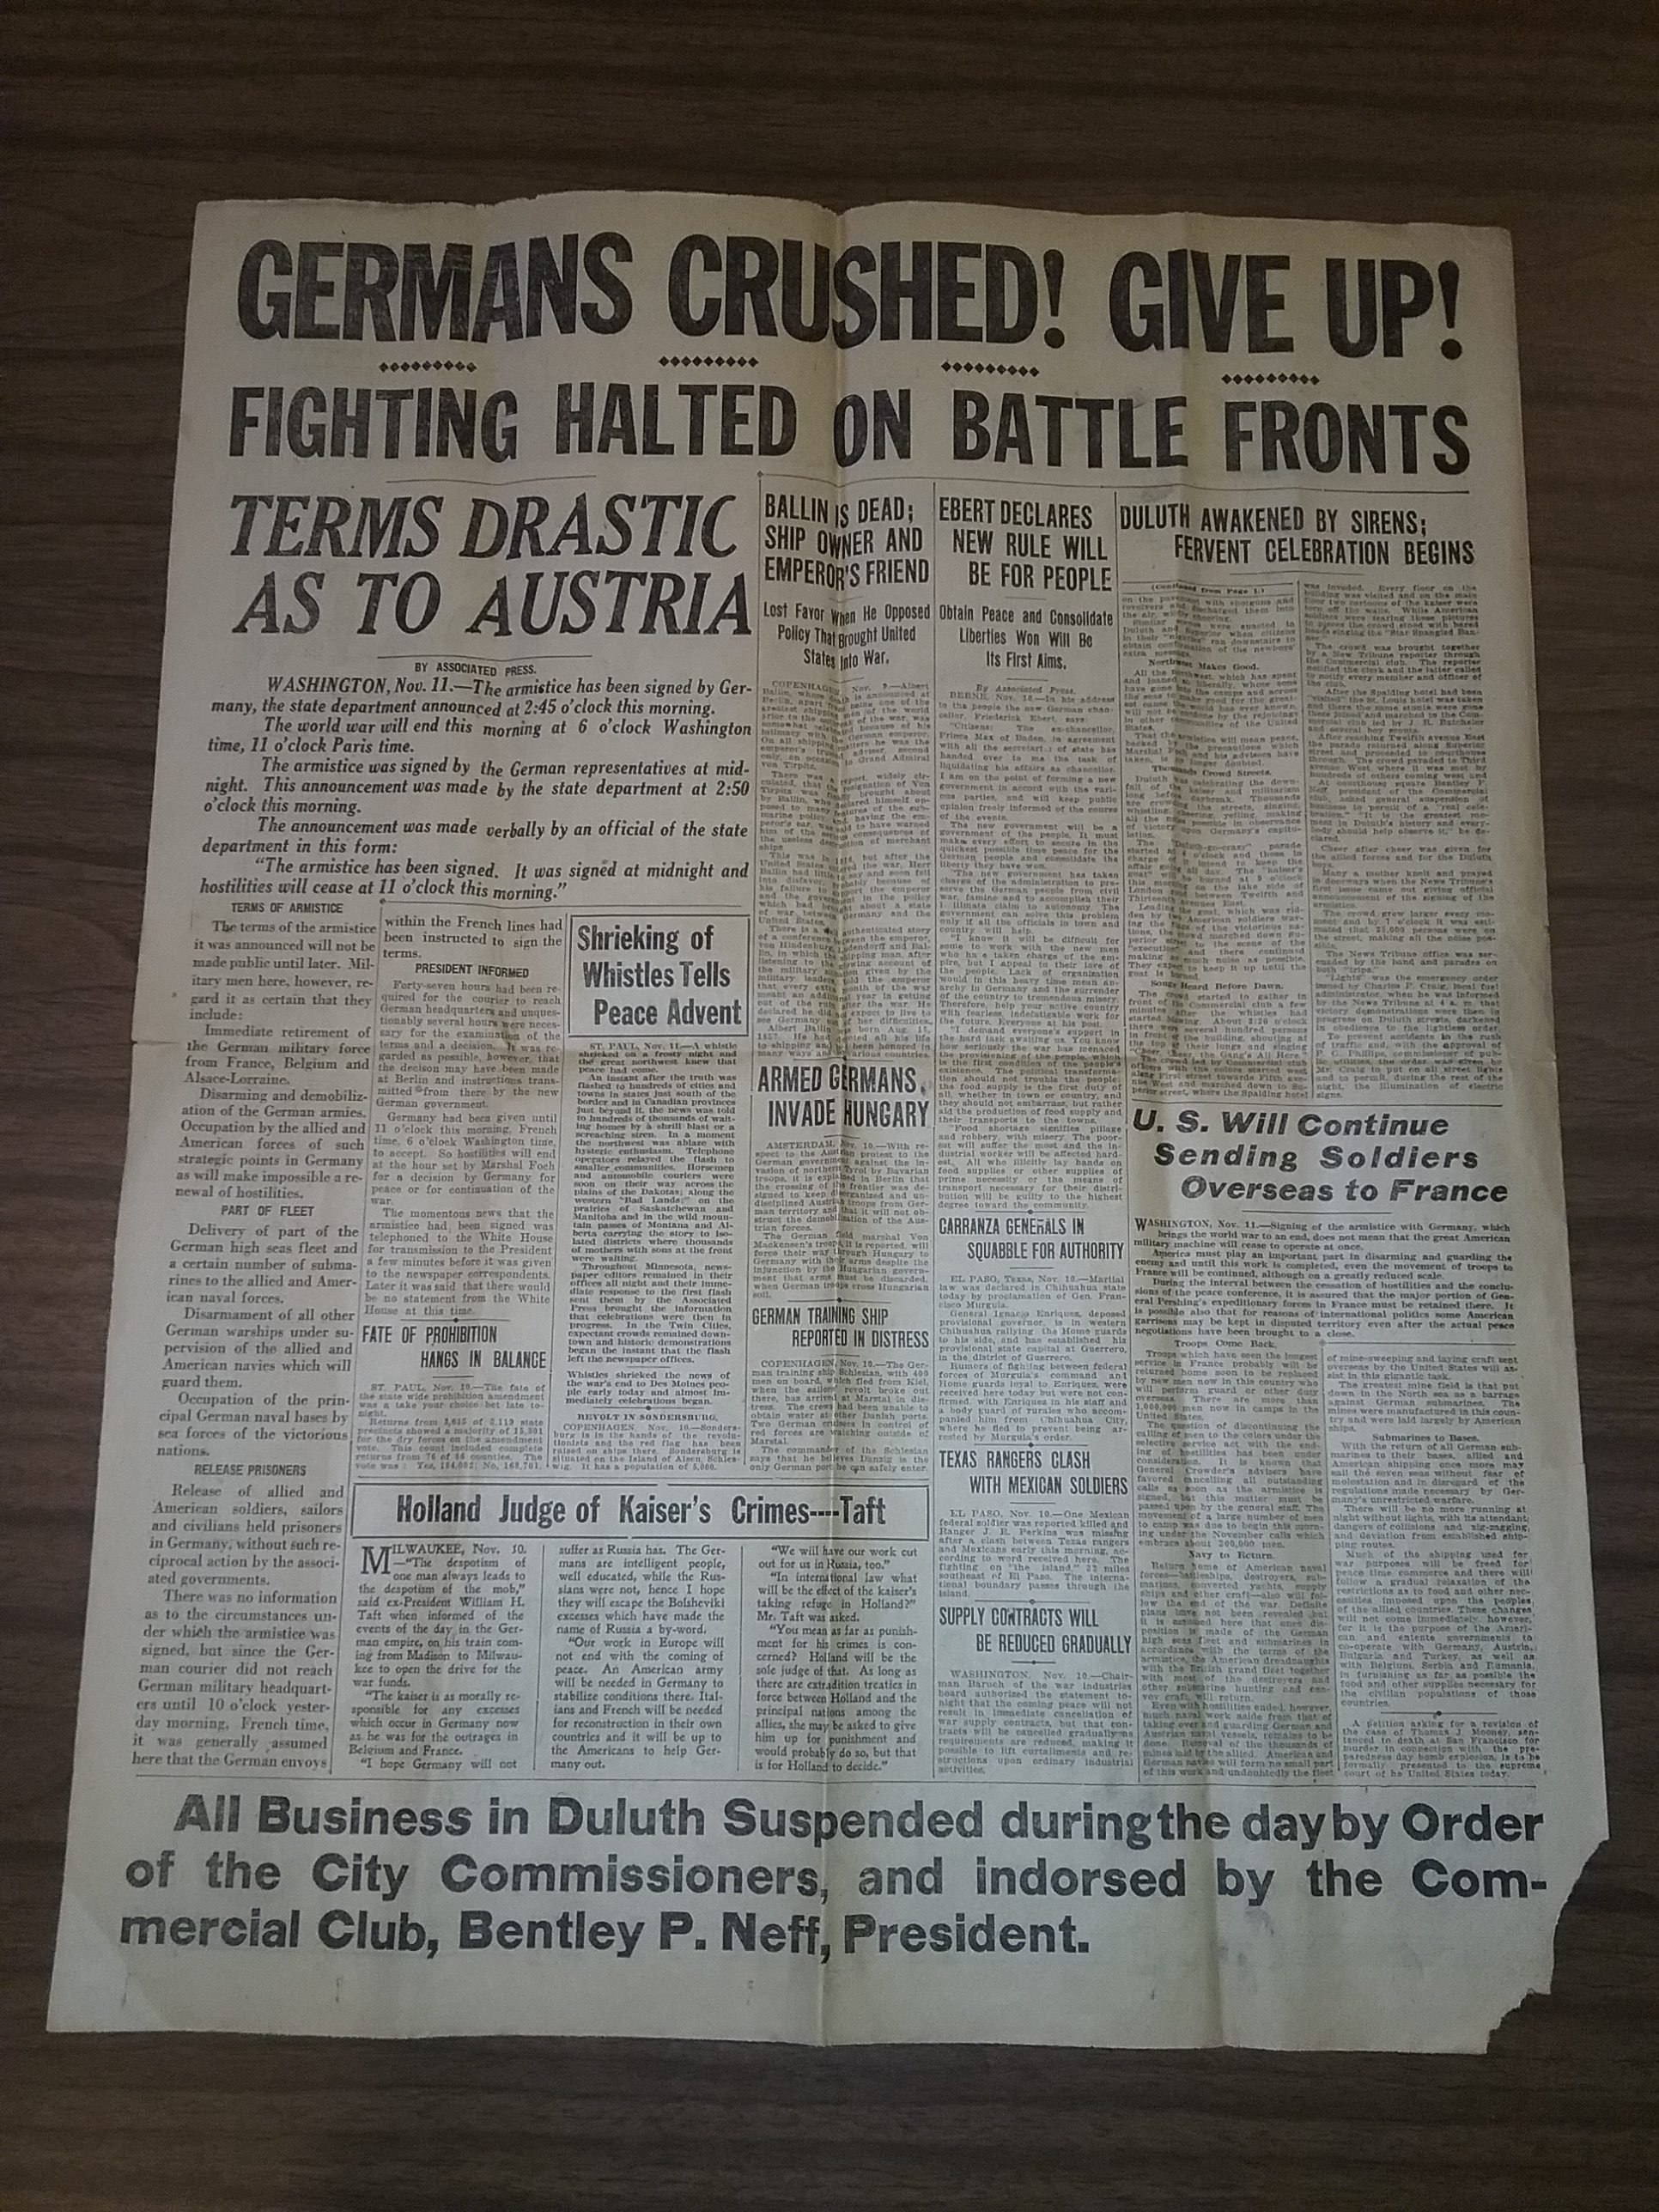 Armistice Day, November 11, 1918, announcement of the end of World War I from The Duluth News Tribune, page 4.